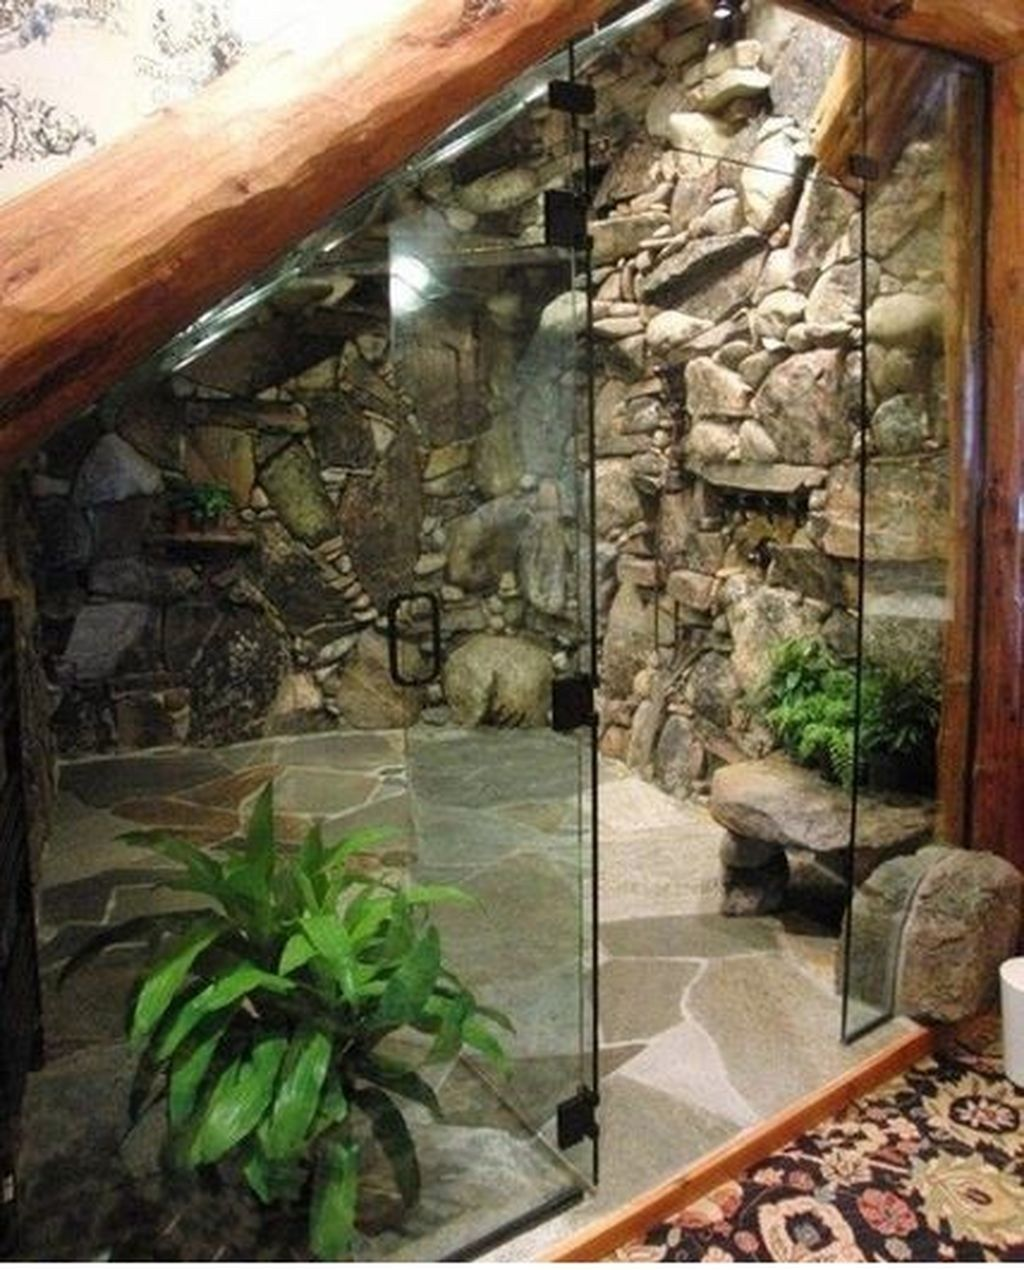 The Best Jungle Bathroom Decor Ideas To Get A Natural Impression 25